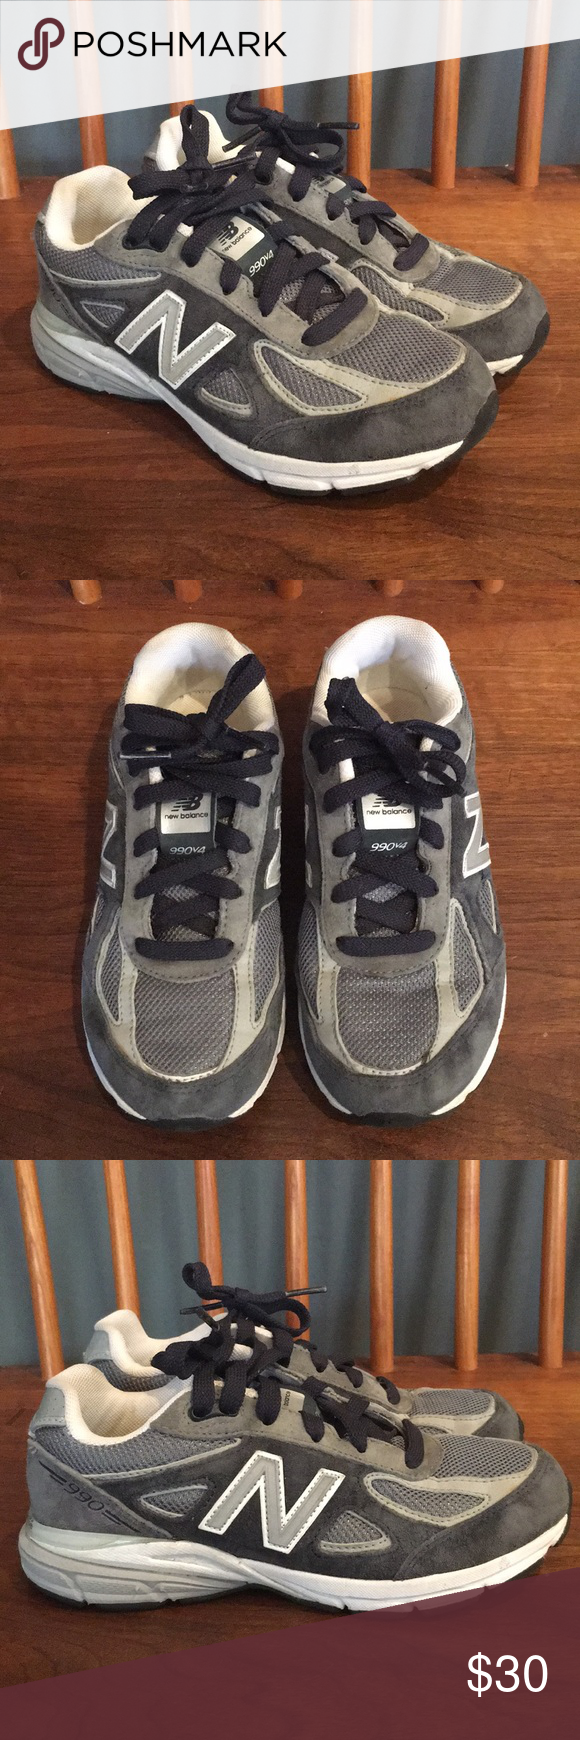 Boys New Balance Sneakers in 2020 | New